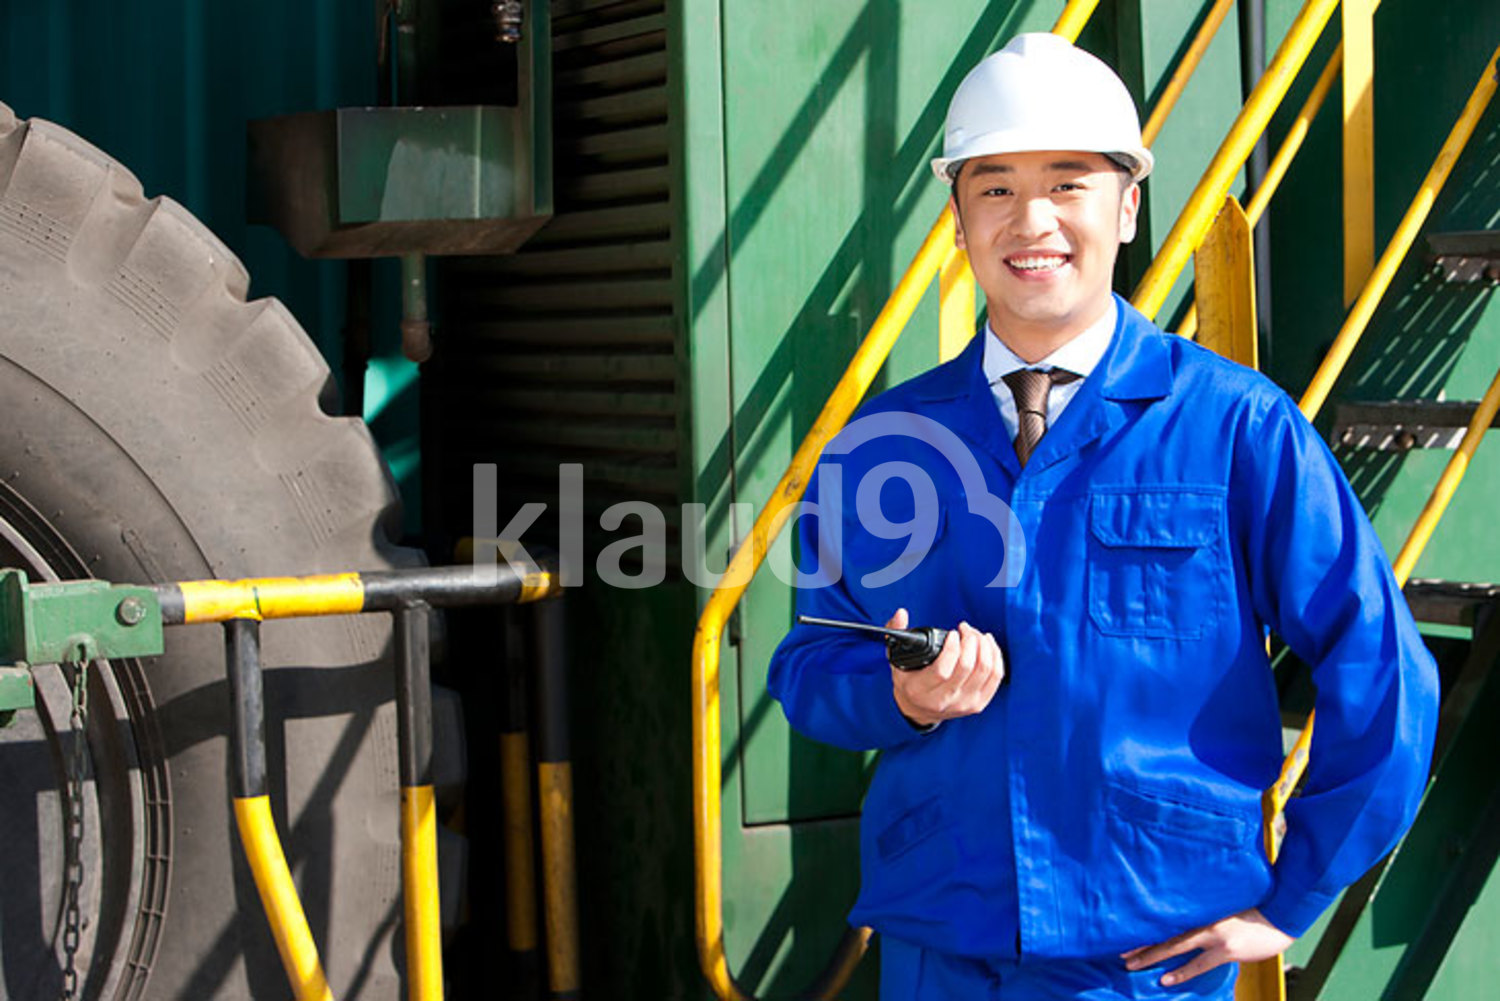 Chinese shipping industry manager with a walkie-talkie in front of a machine